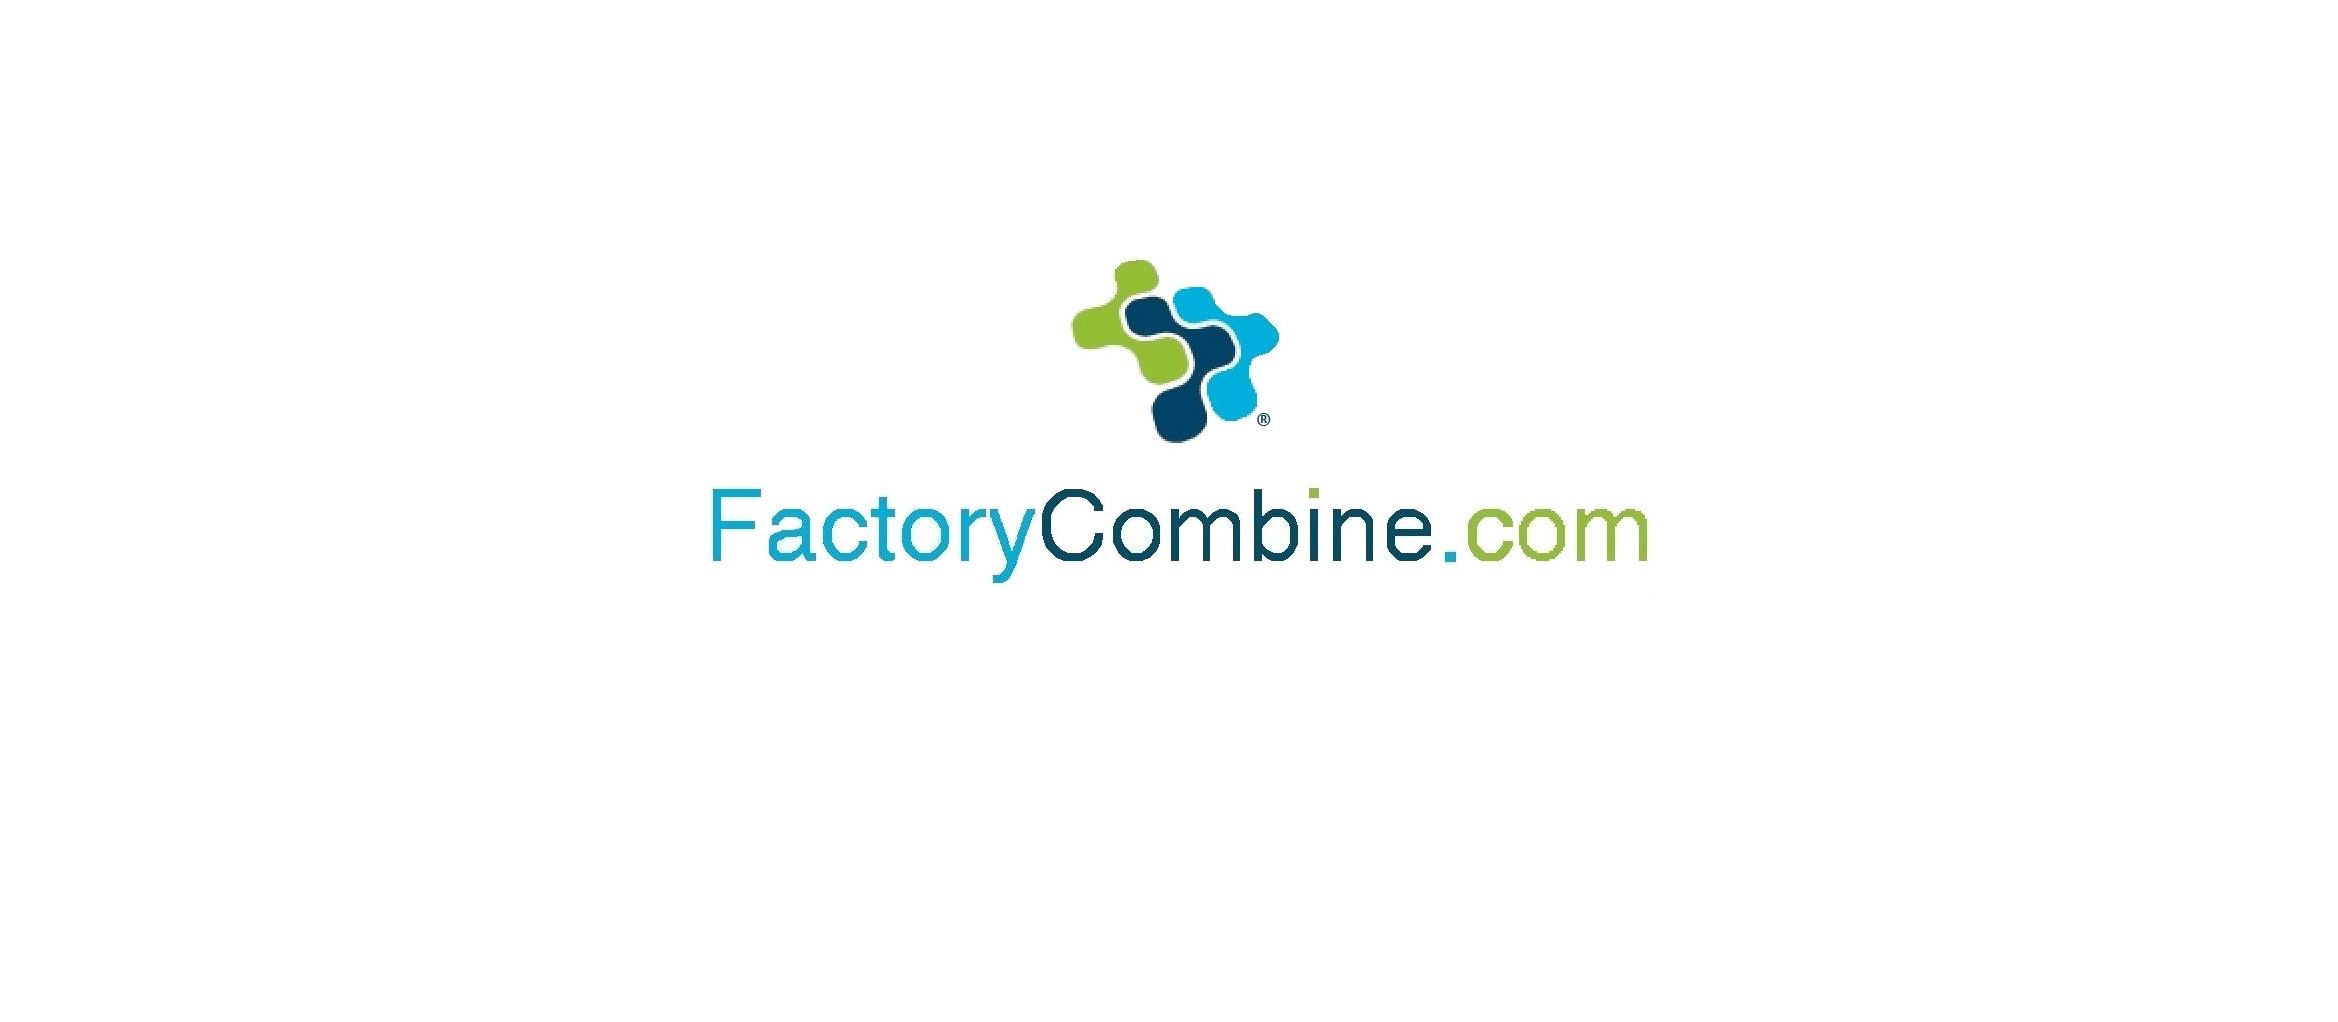 FactoryCombine Commerce Services